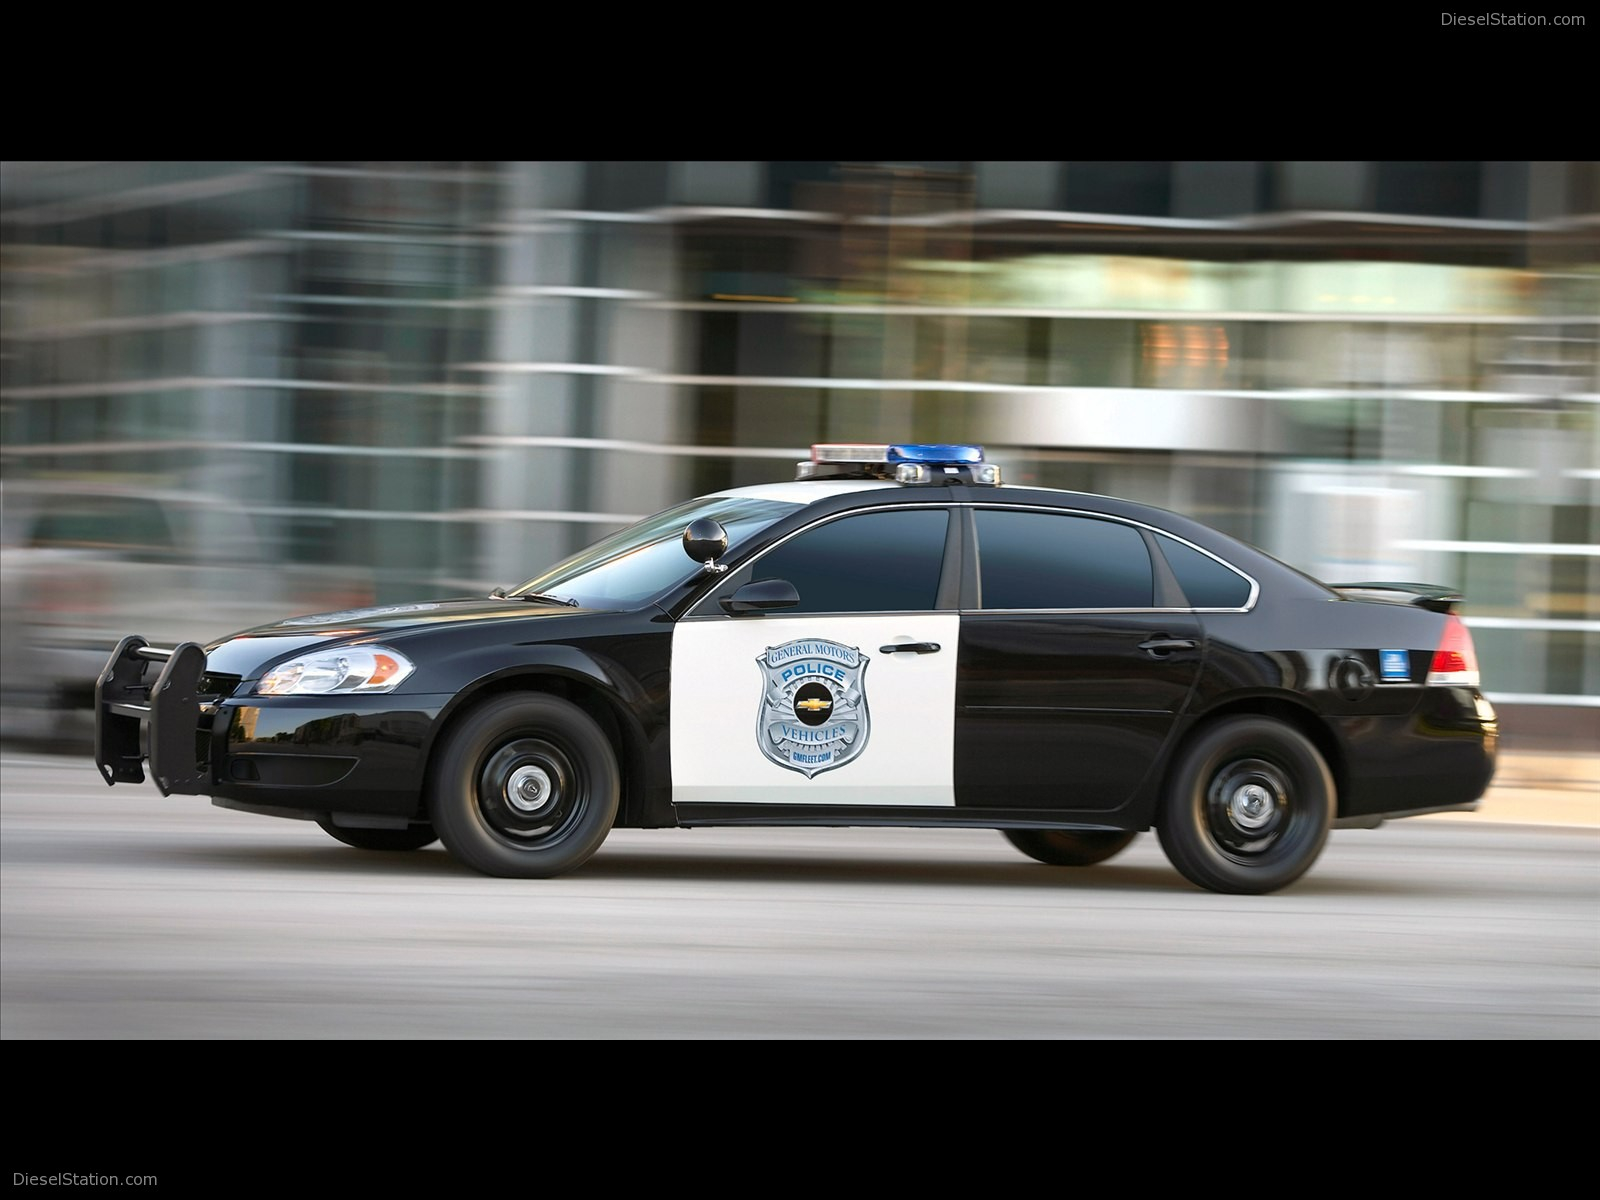 2017 Chevrolet Caprice Police Patrol Vehicle photo - 3